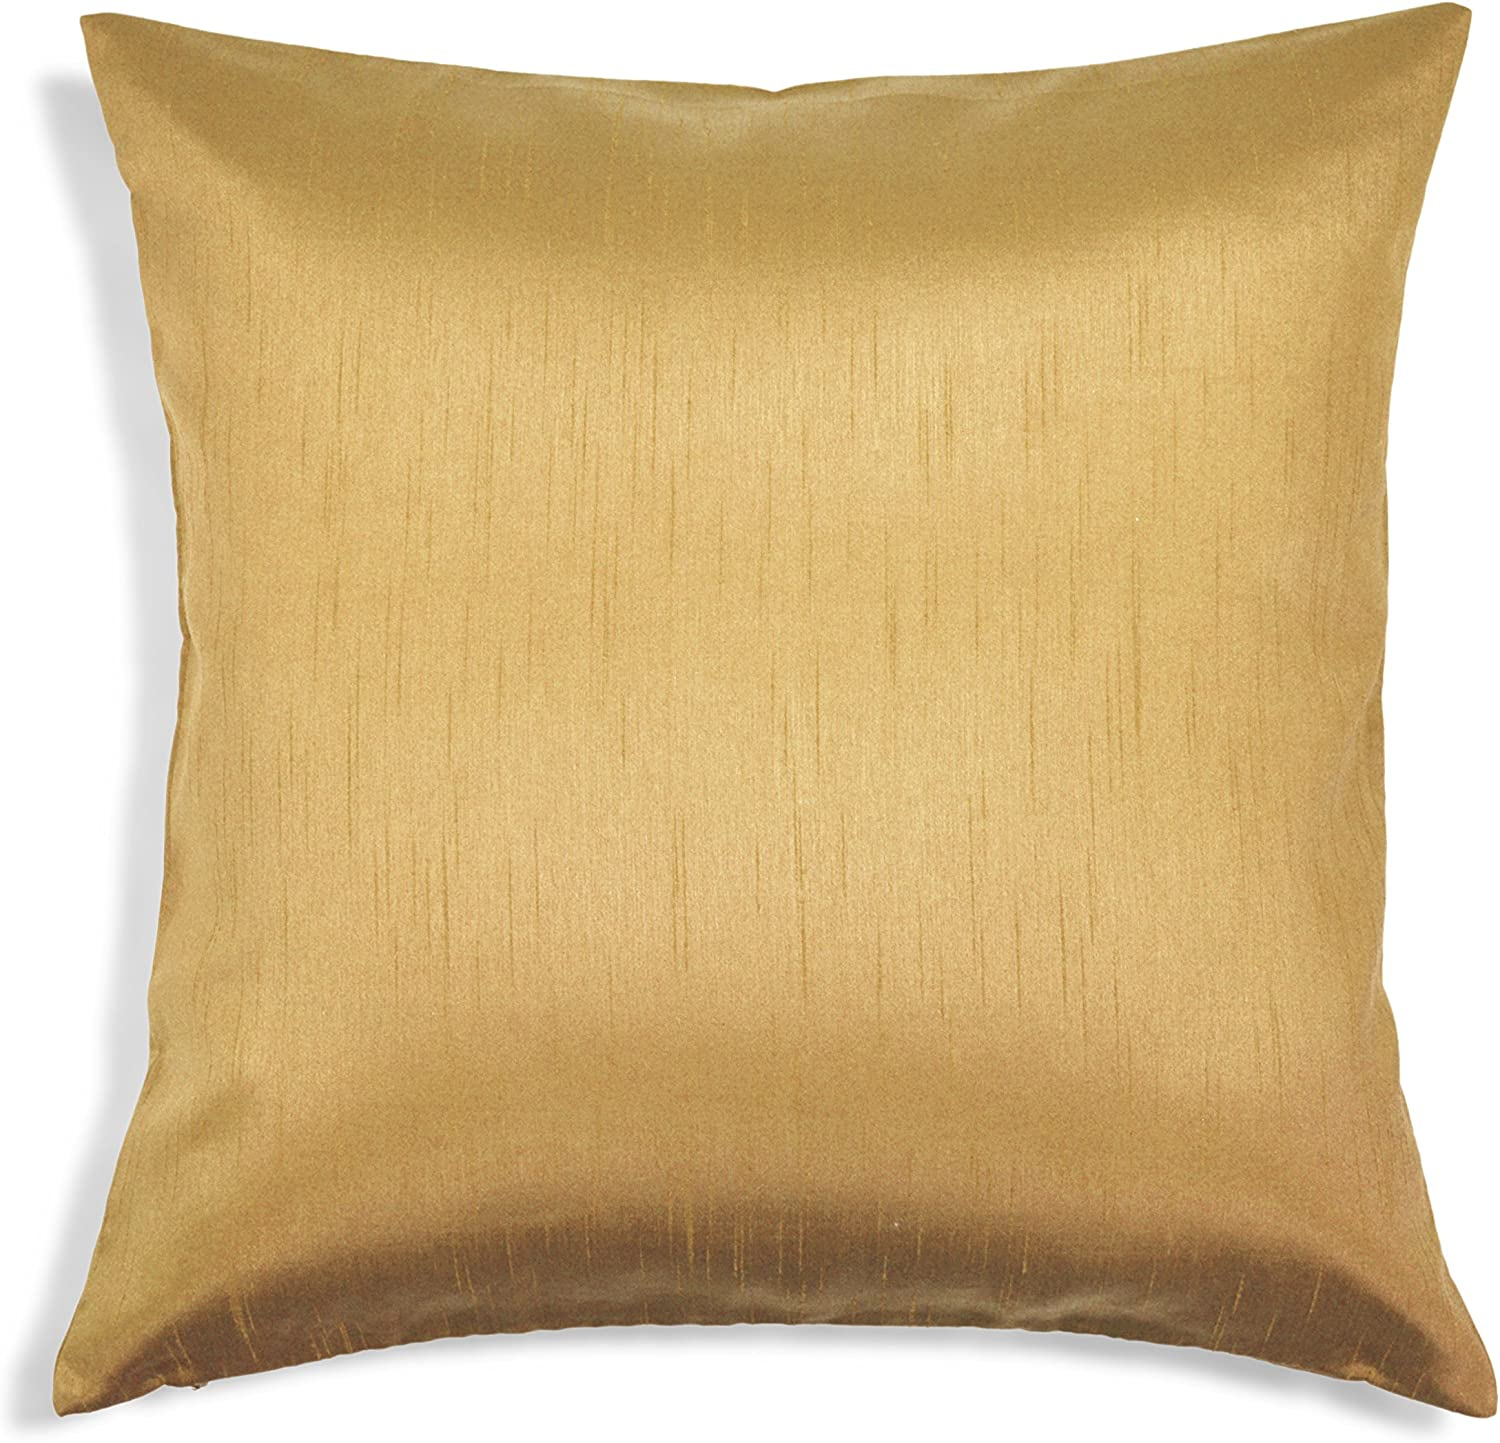 Aiking Home Solid Faux Silk Euro Sham Pillow Cover Zipper Closure 24 By 24 Inches Brass Home Kitchen